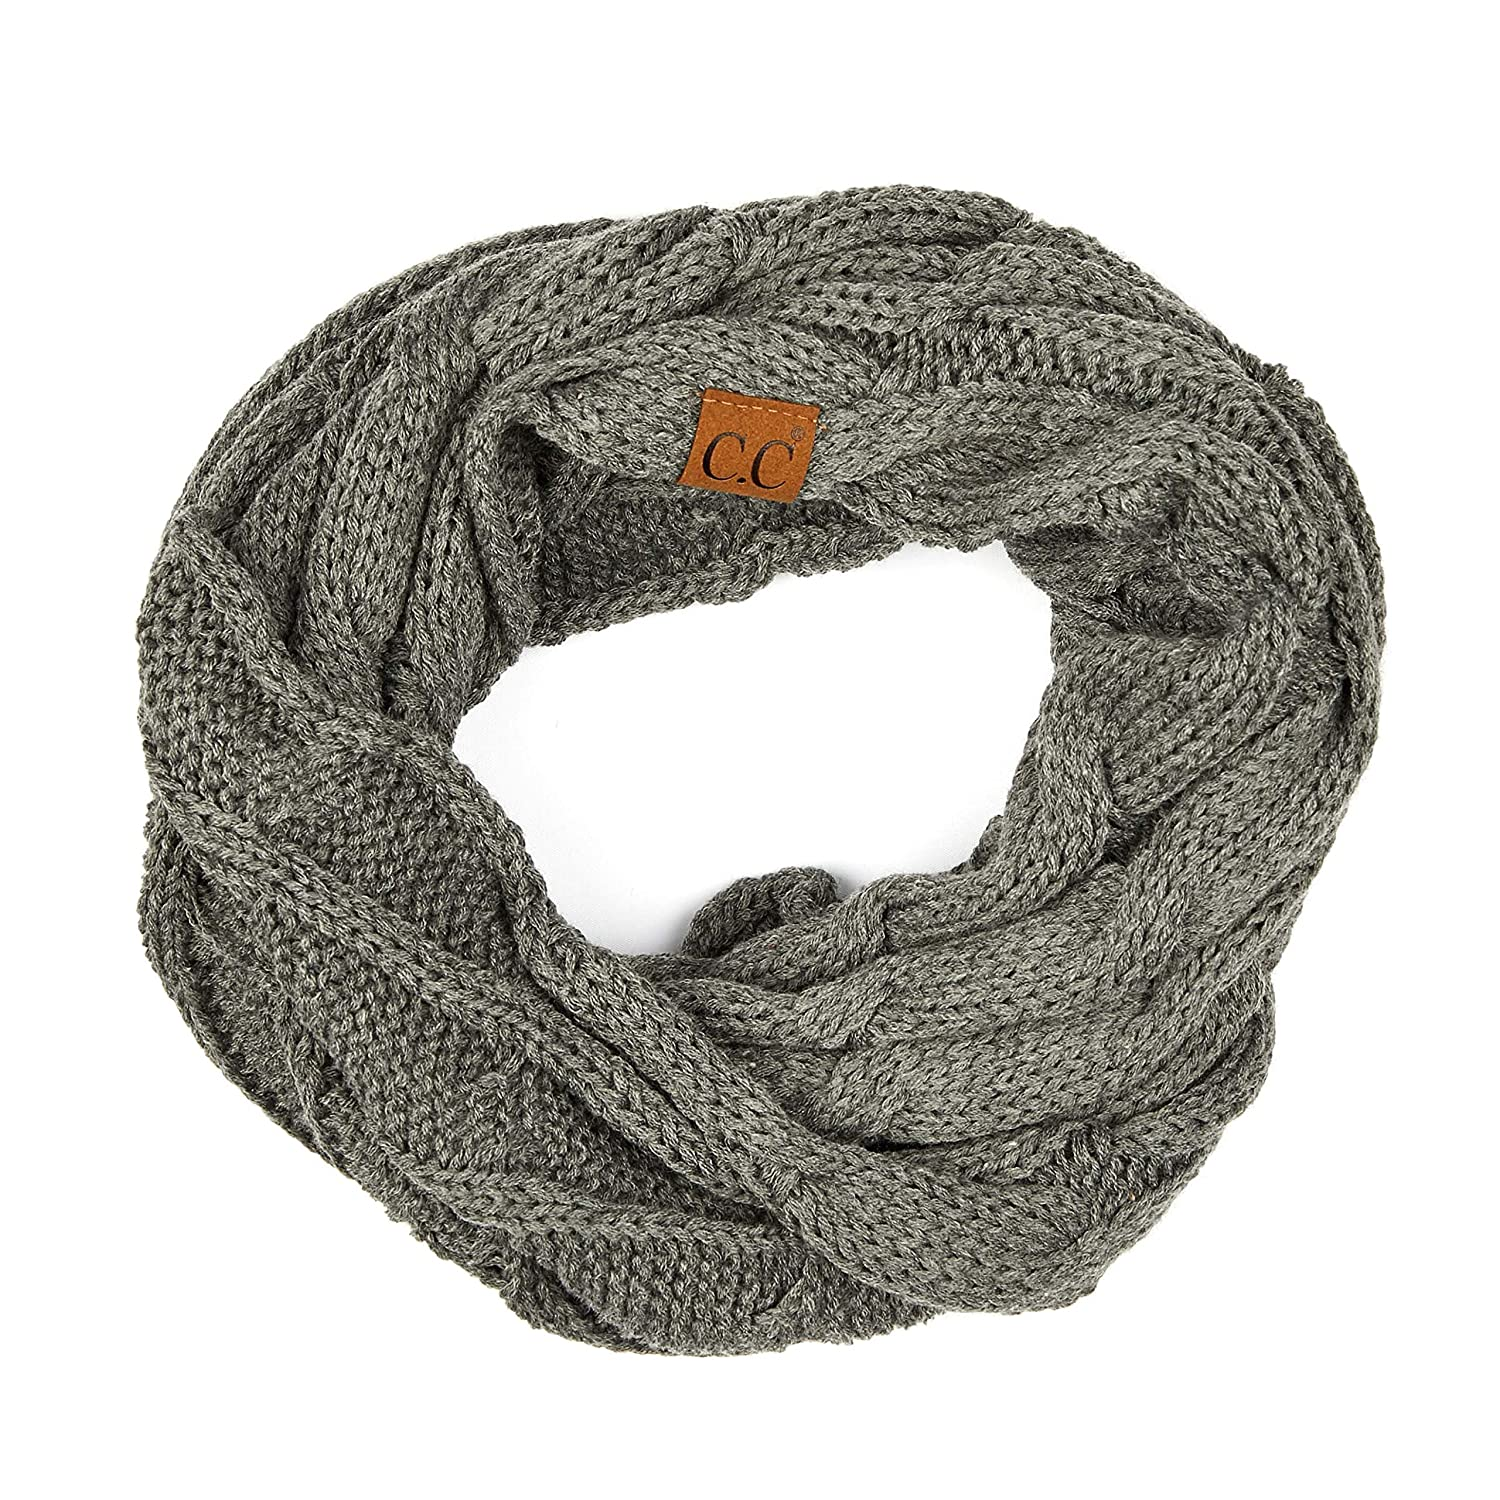 C.C Exclusives Solid and Multi Color Cable Kint Infinity Scarf C.C®